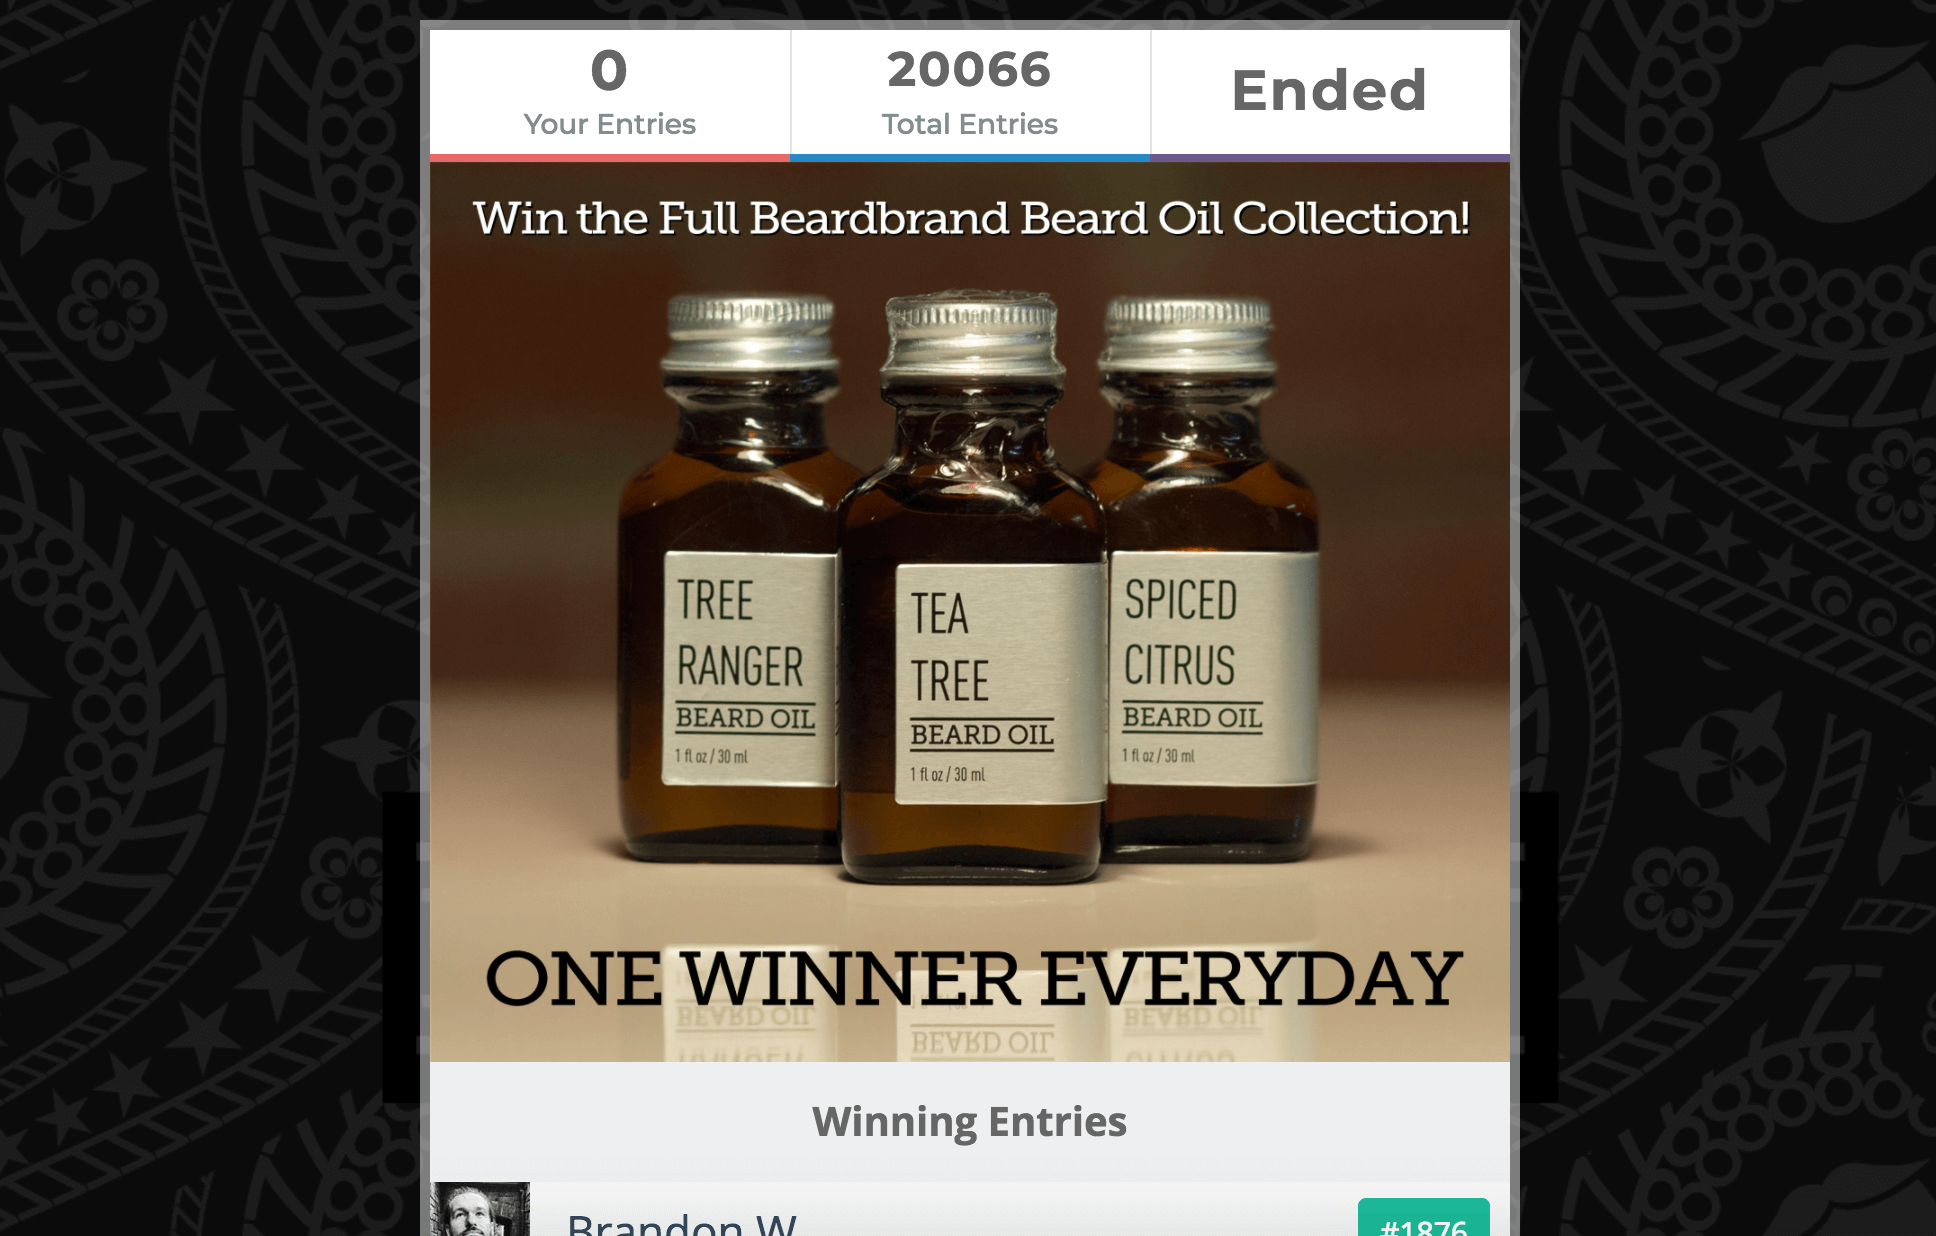 Screenshot showing a contest